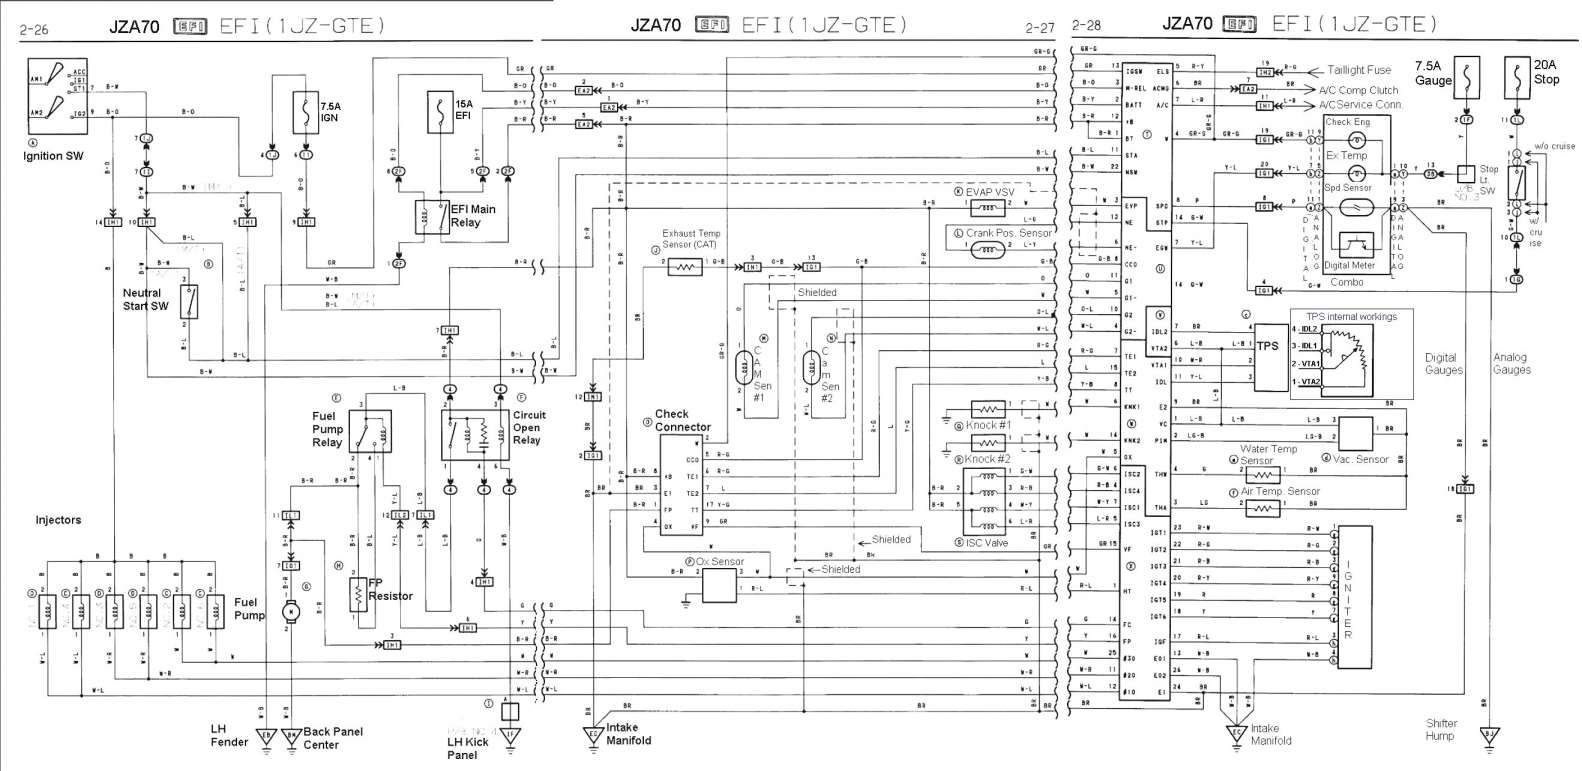 Bmw E39 Wiring Diagrams 1998 - 99 Mitsubishi Mirage Fuse Diagram  fusebox-making.au-delice-limousin.fr | 1998 Bmw Wiring Diagrams Ignition |  | Bege Place Wiring Diagram - Bege Wiring Diagram